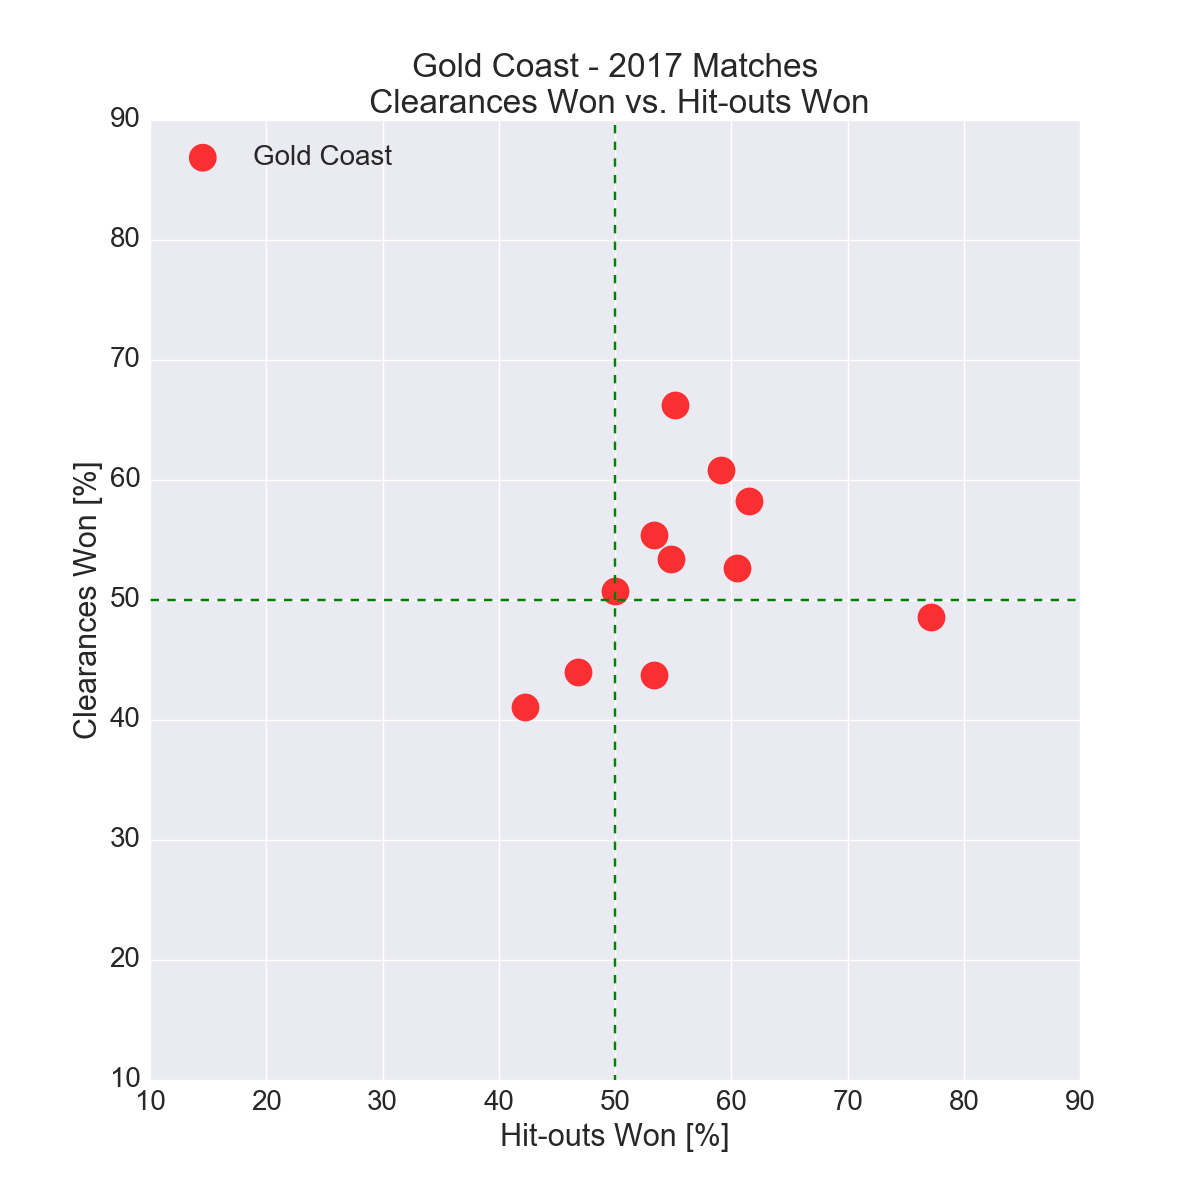 Figure-10: Gold Coast in 2017 – Clearances Won vs. Hit-outs Won